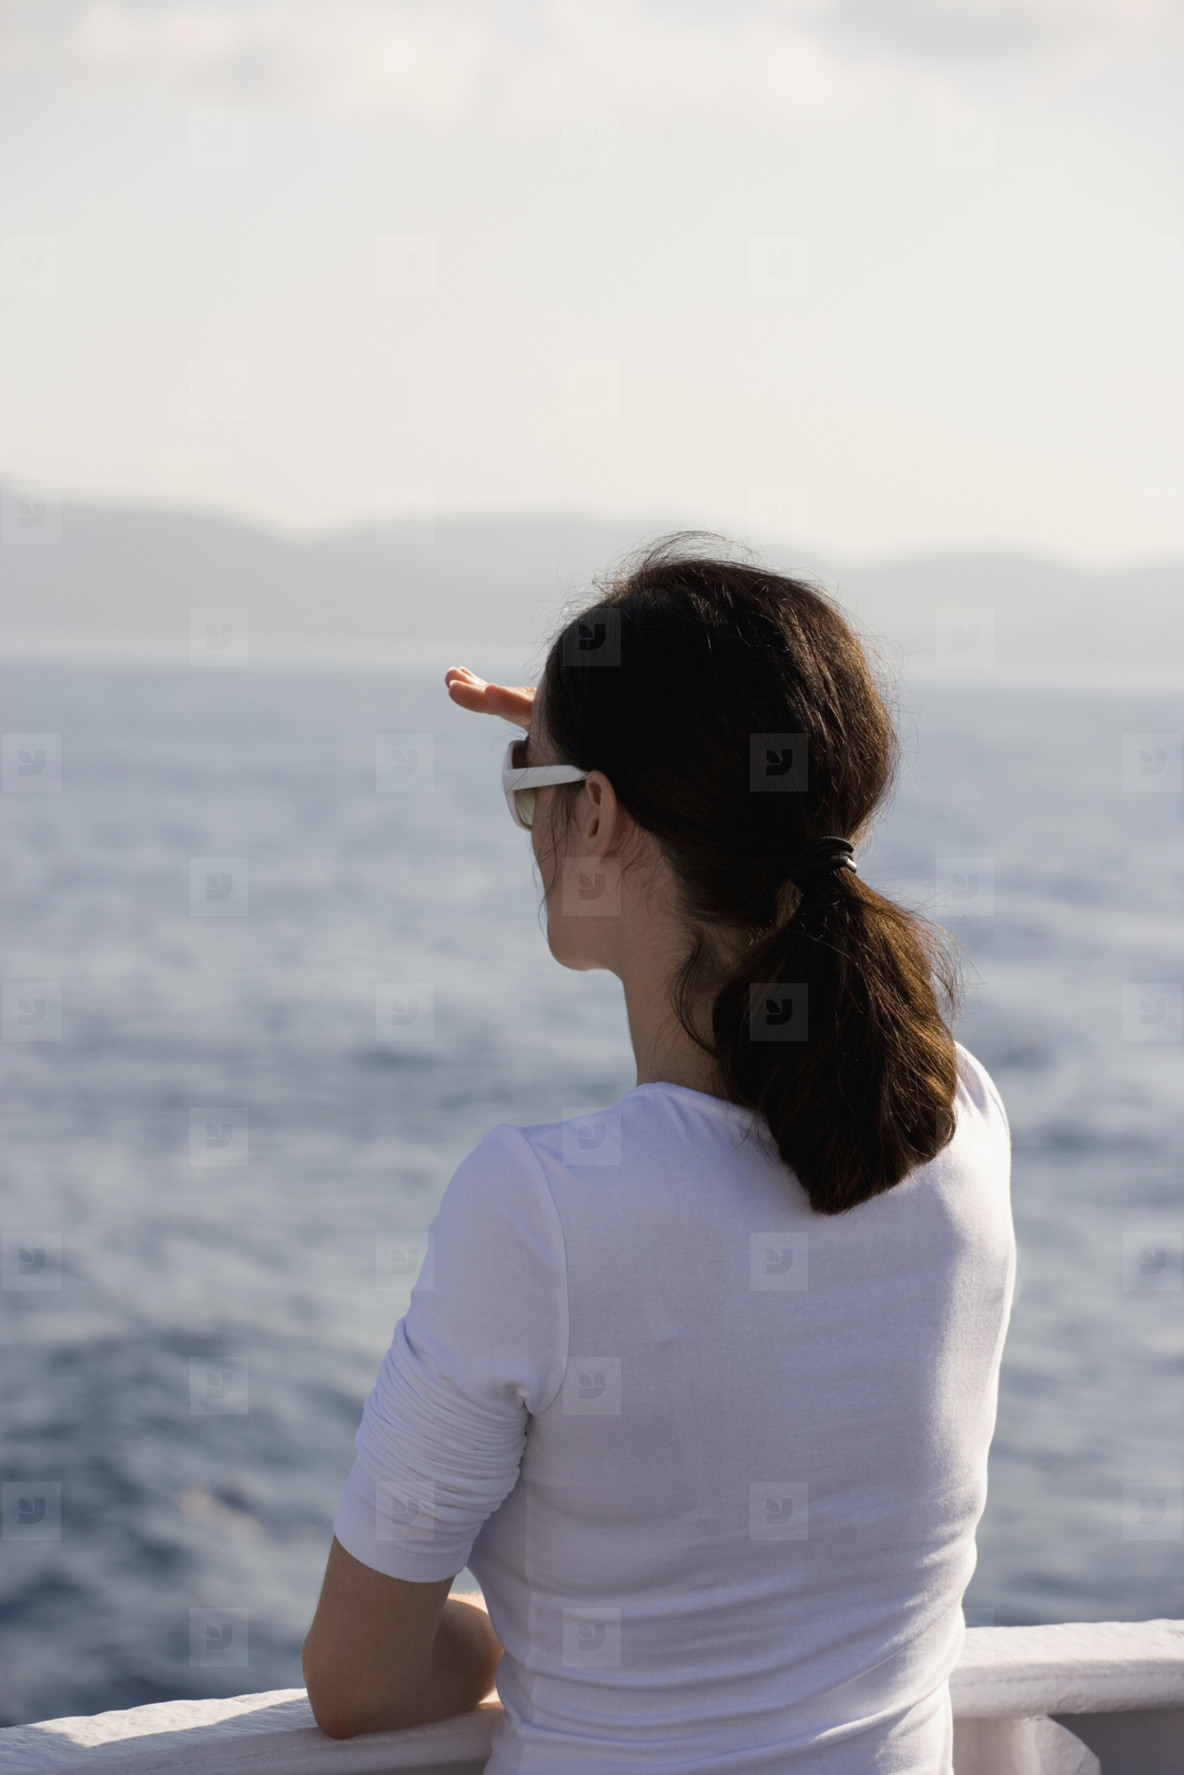 She Looked Out Over the Ocean  17